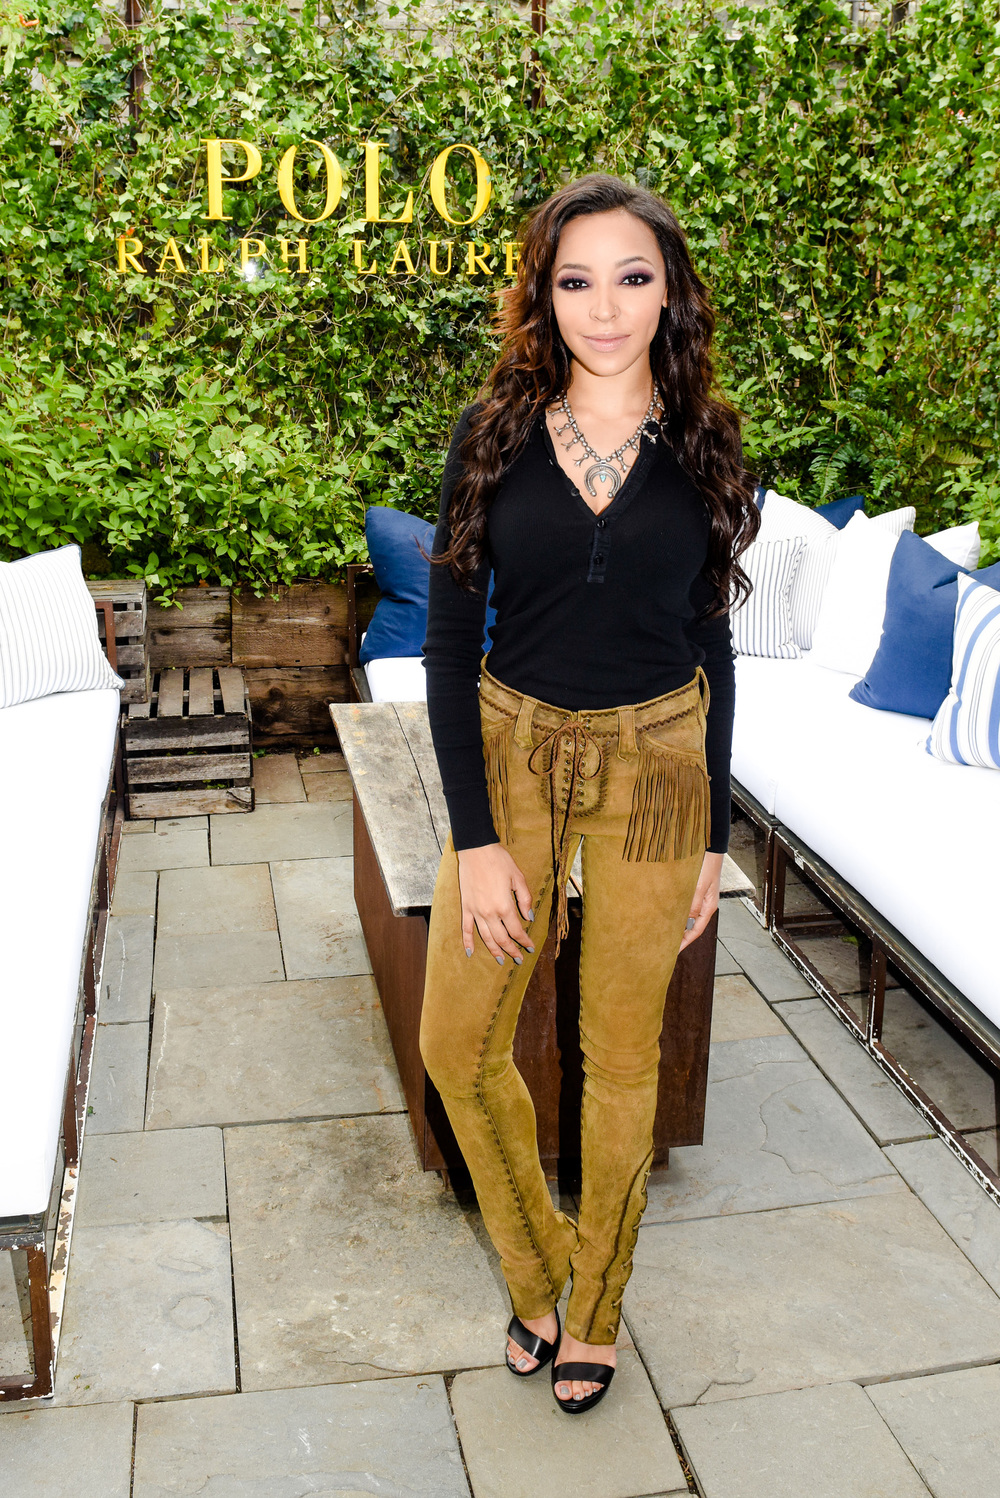 Singer Tinashe at the Spring 2016 POLO Ralph Lauren presentation. Image via Ralph Lauren.